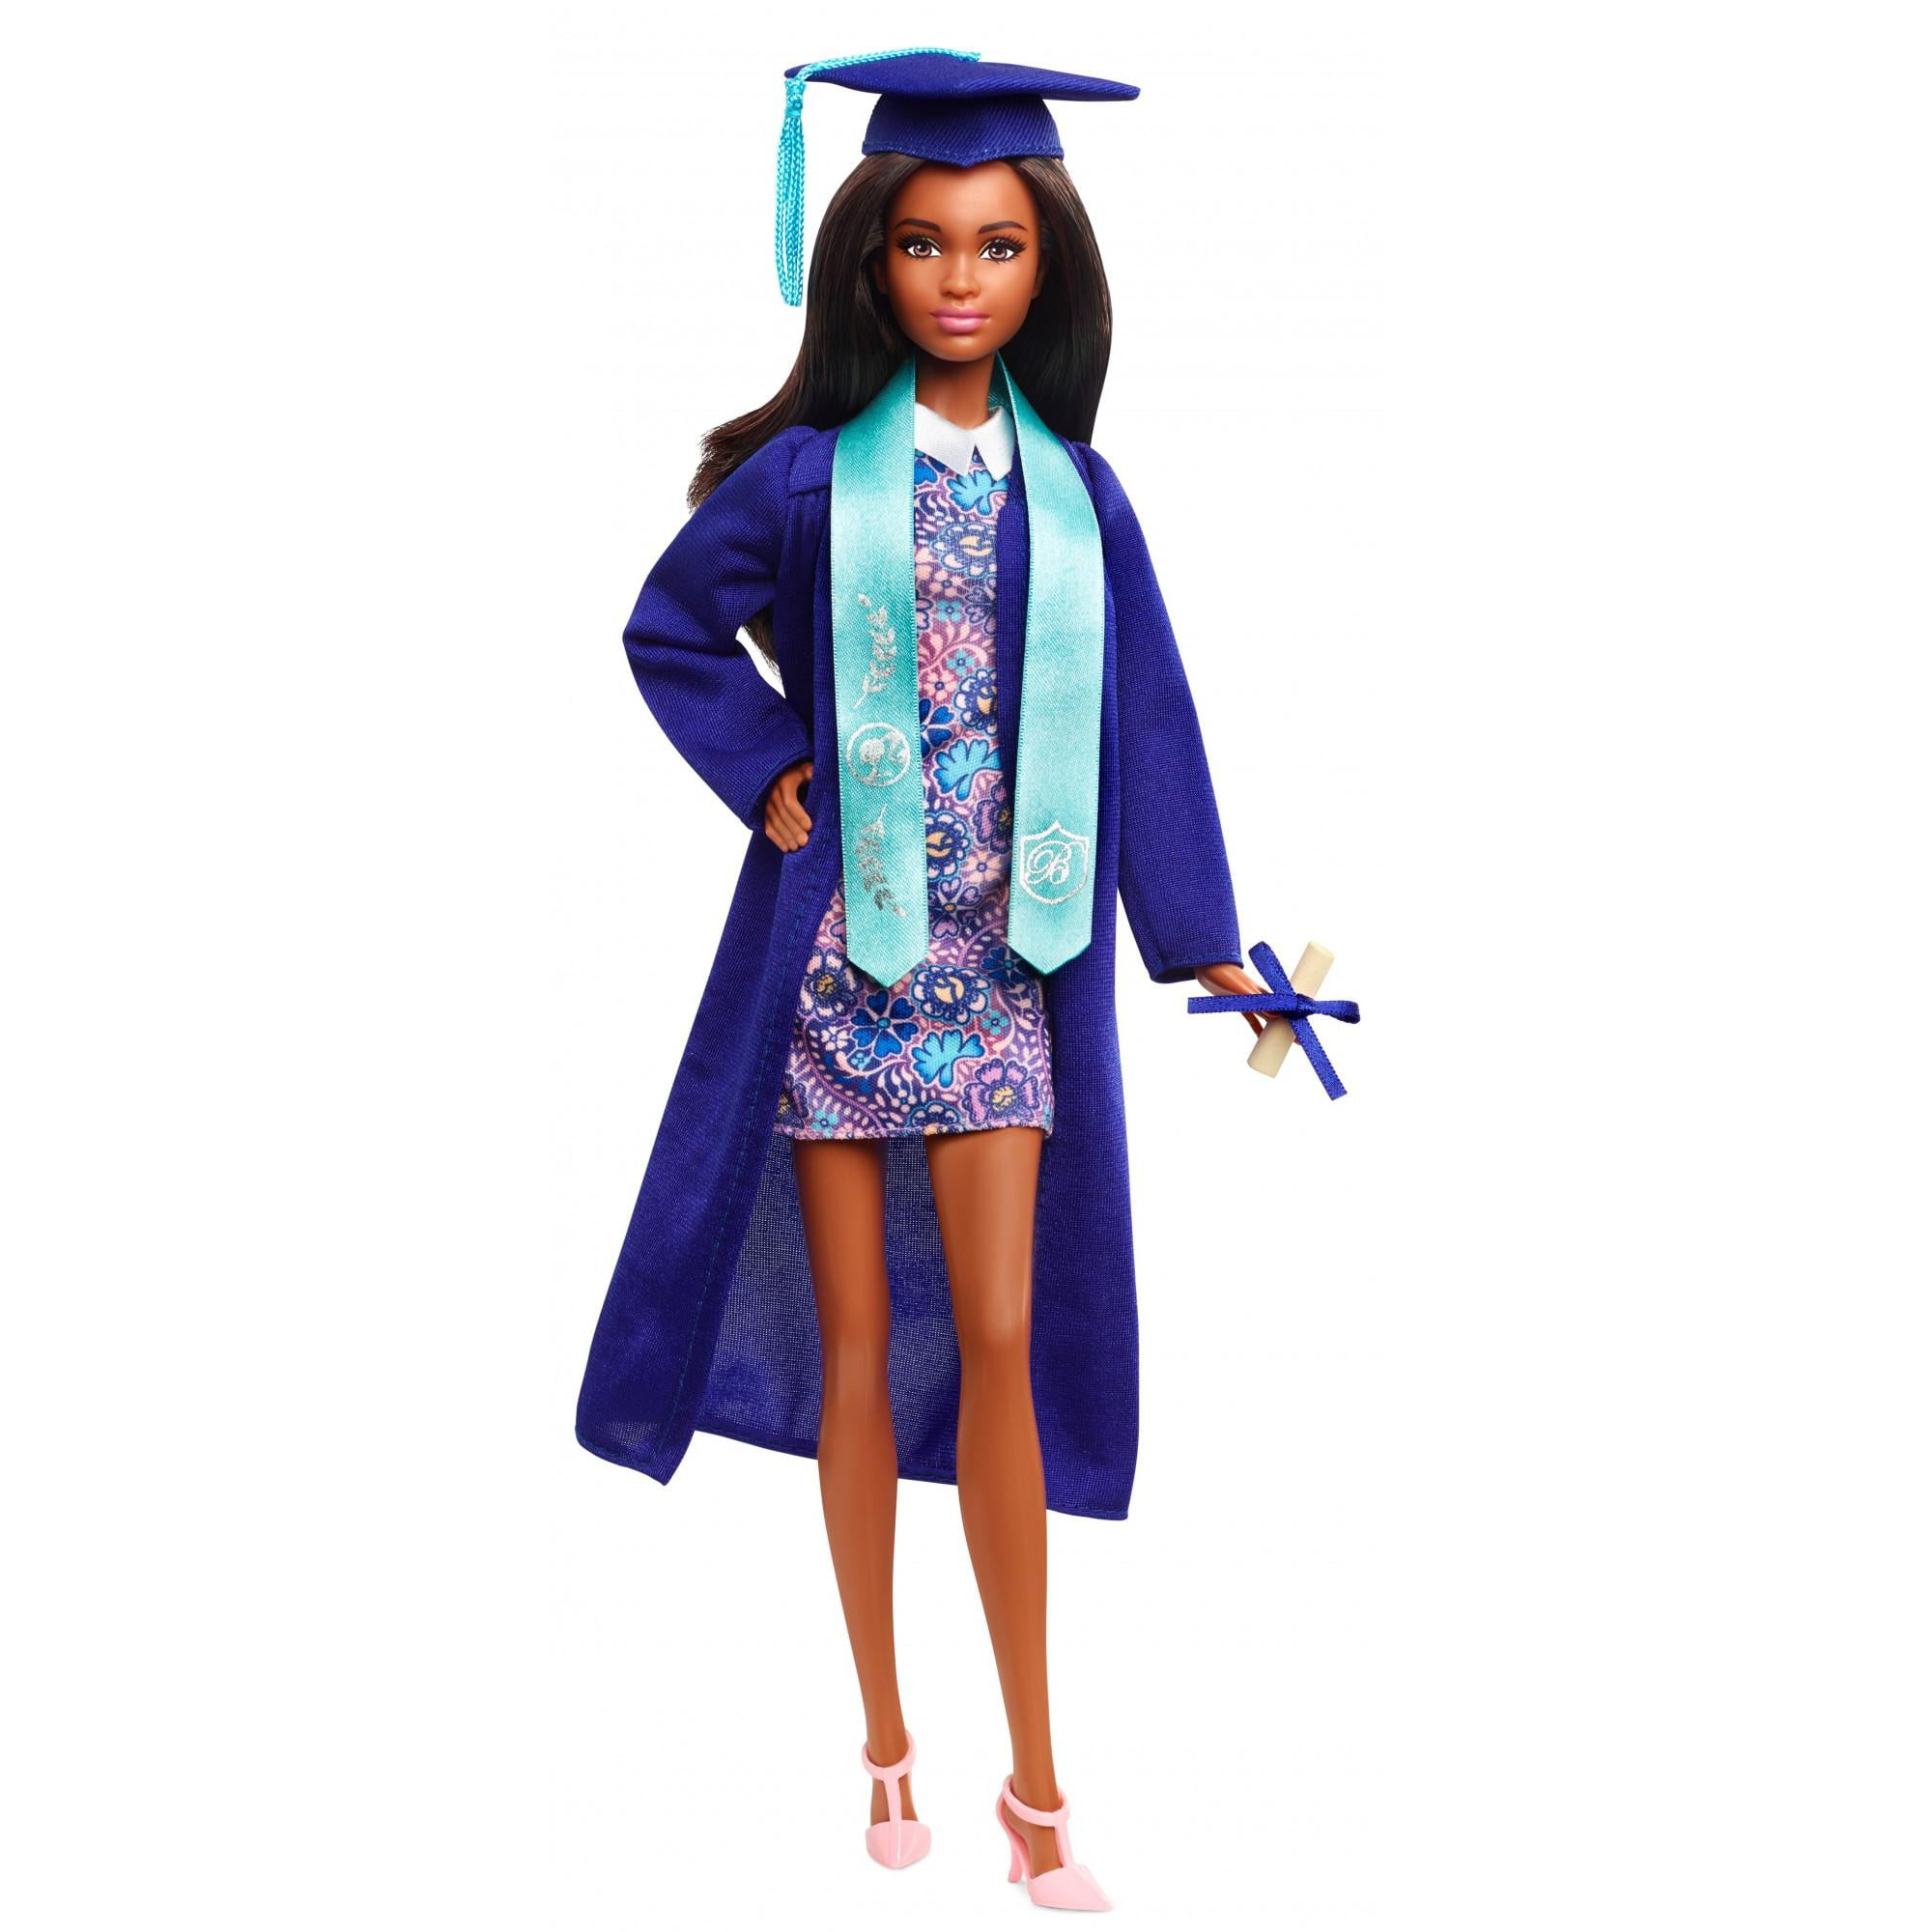 Barbie Graduation Day Doll, Brunette by Mattel